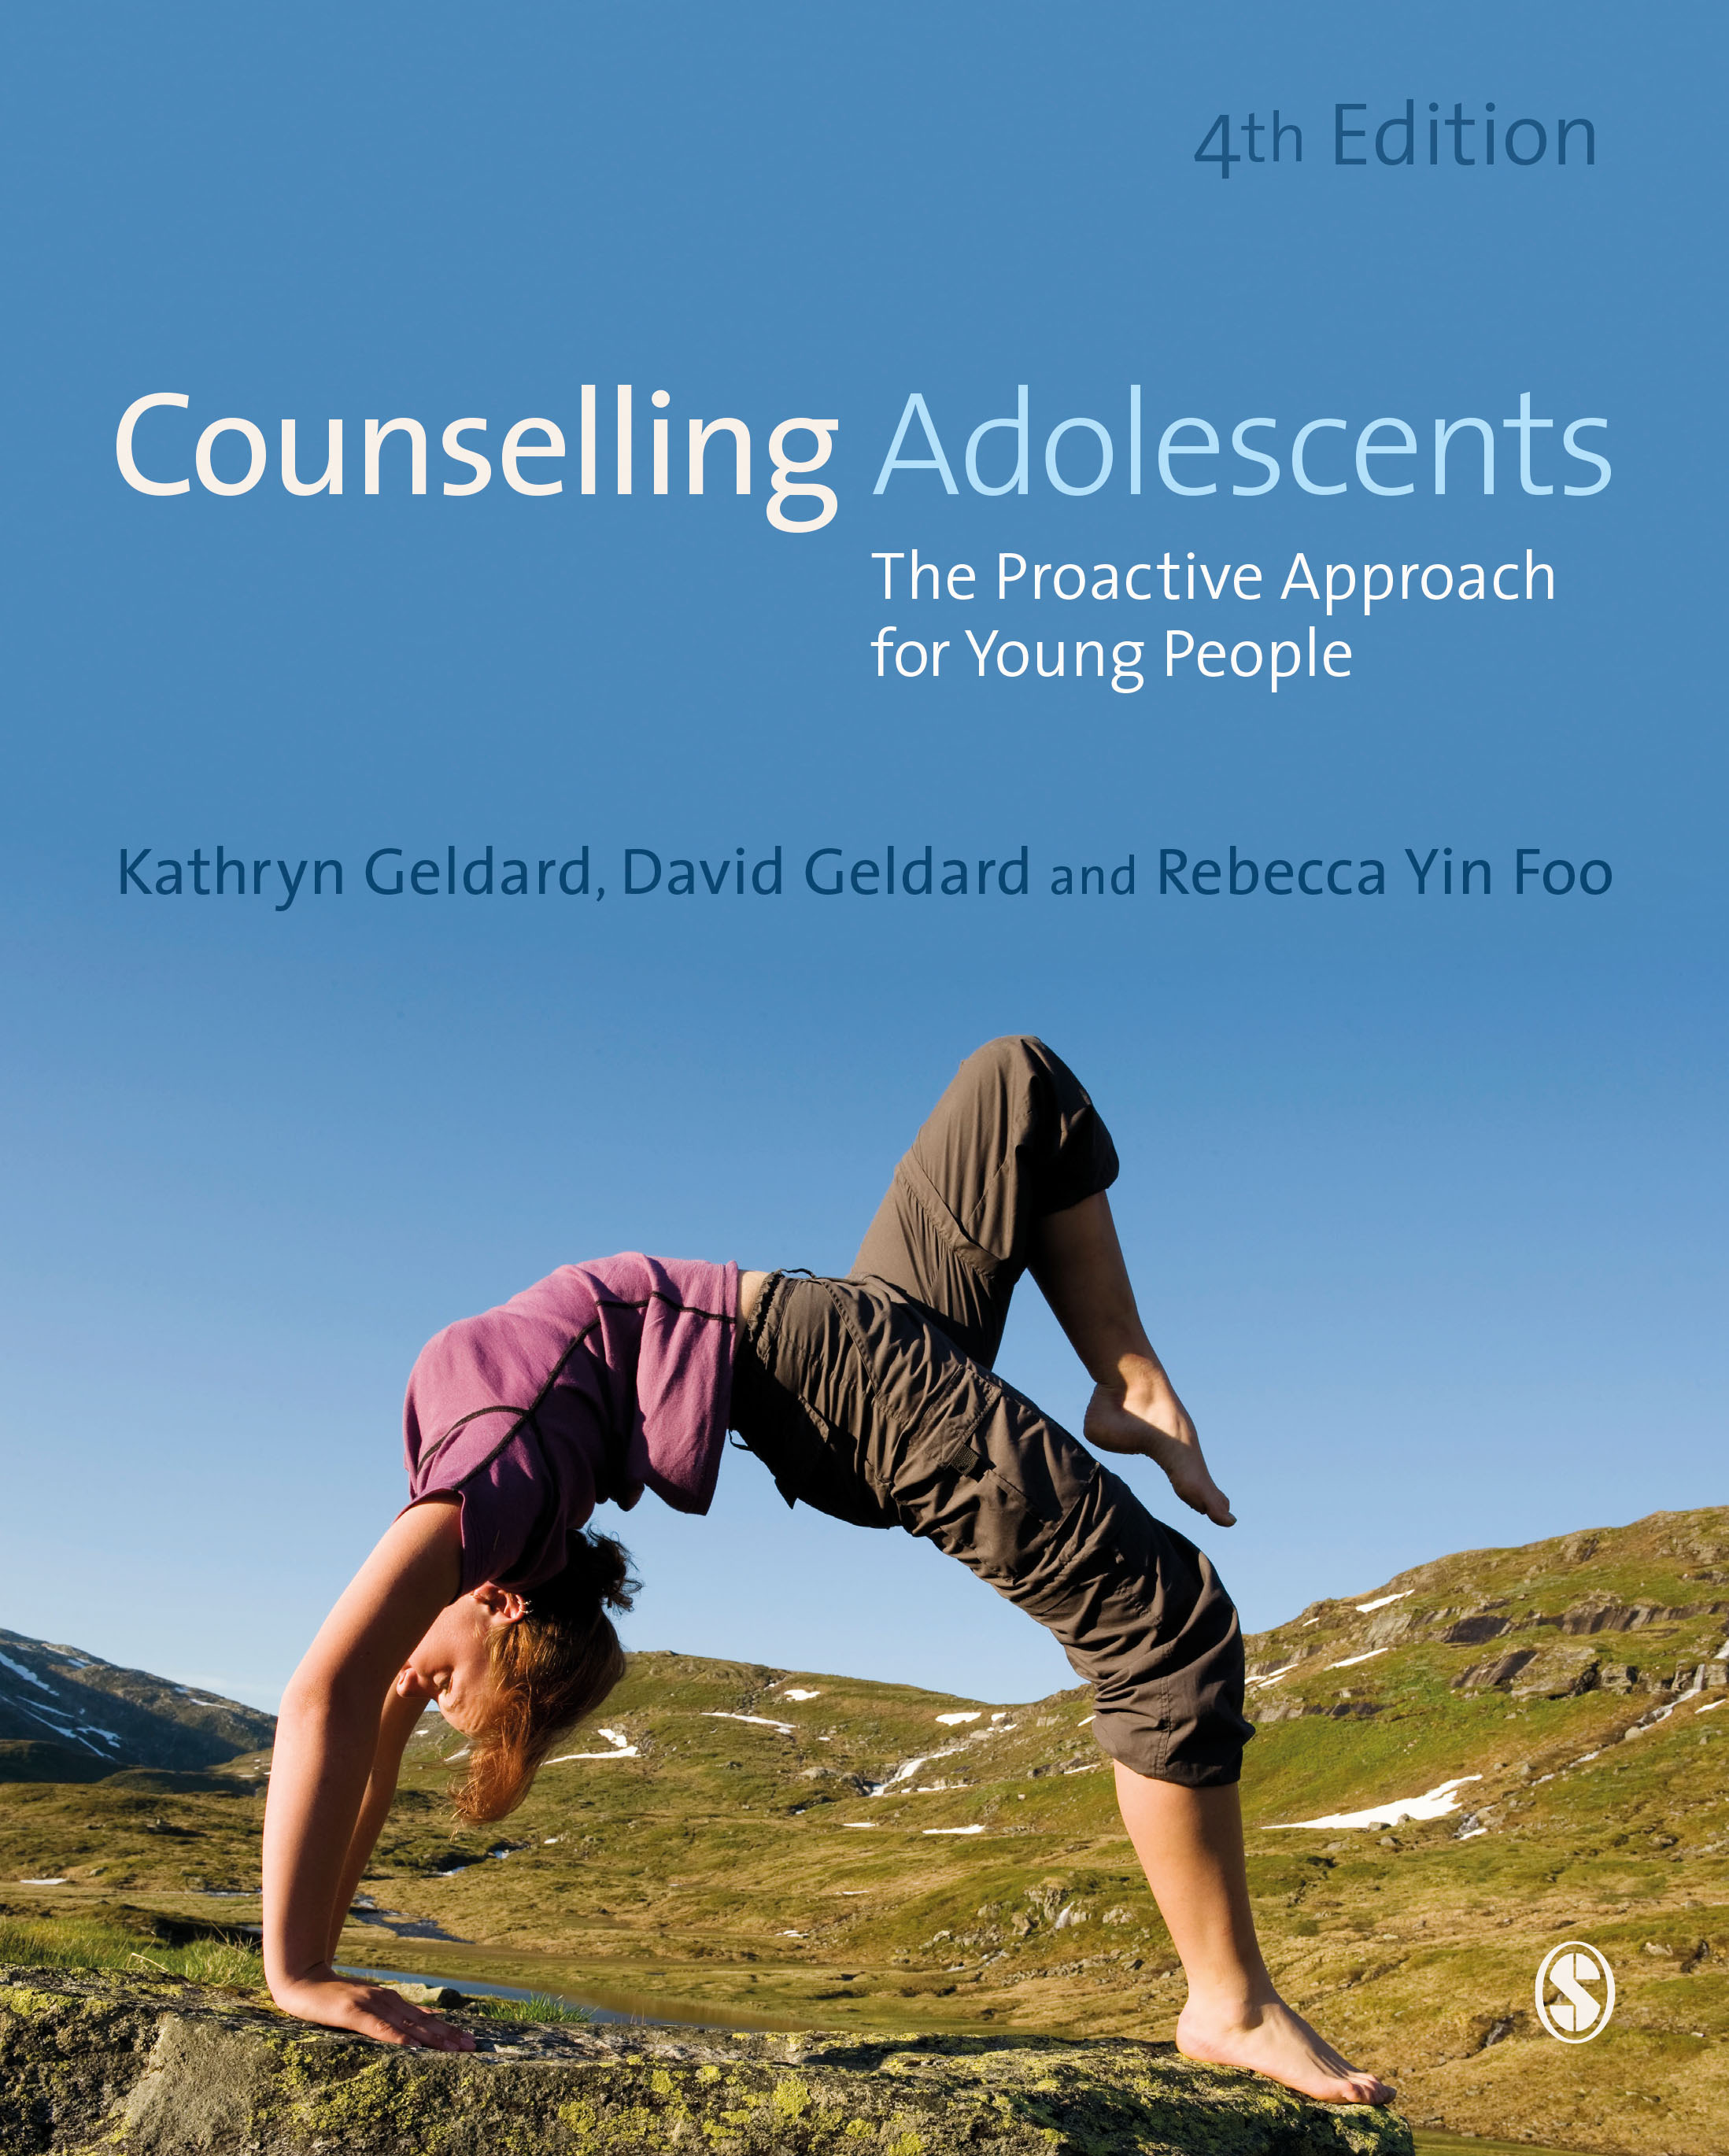 Counselling Adolescents: The Proactive Approach for Young People book cover image